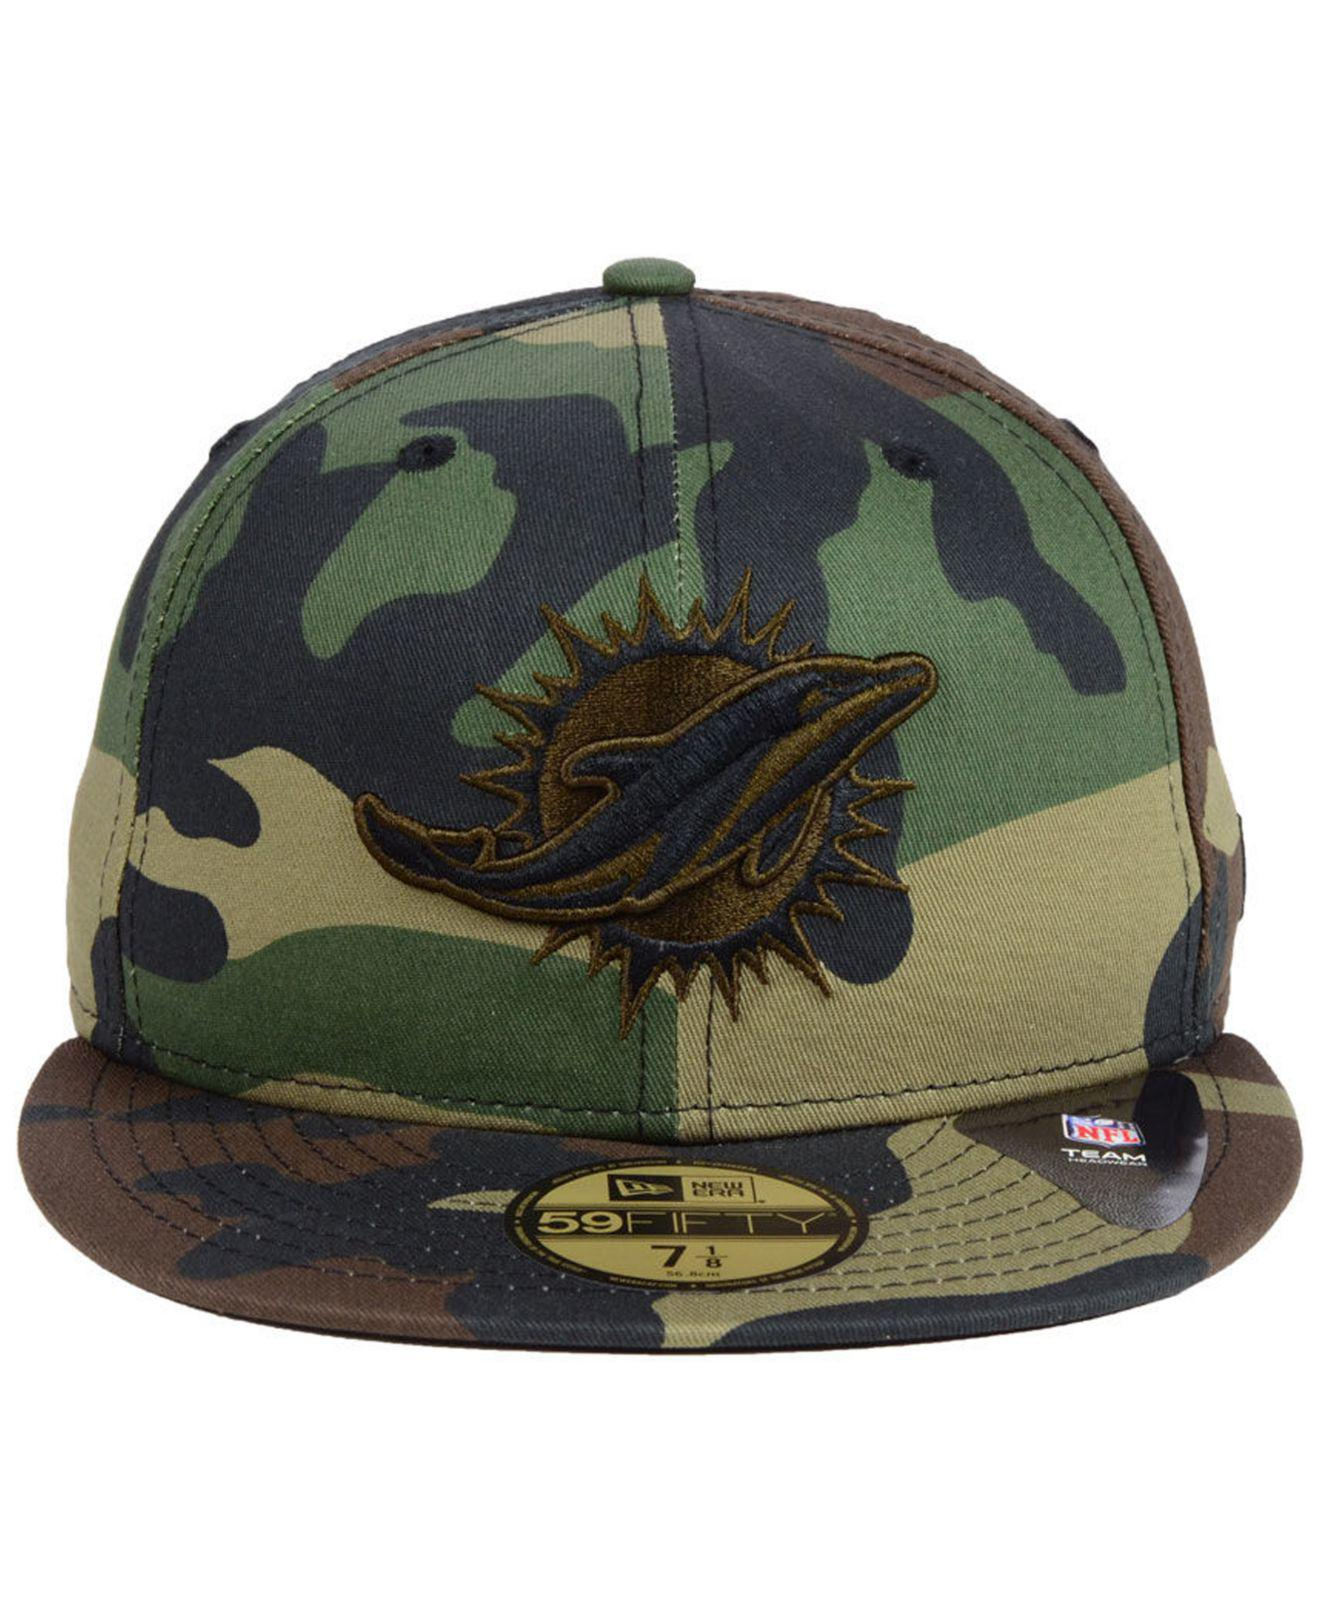 Lyst - KTZ Miami Dolphins Woodland Prism Pack 59fifty-fitted Cap in Green  for Men 2d870d14b